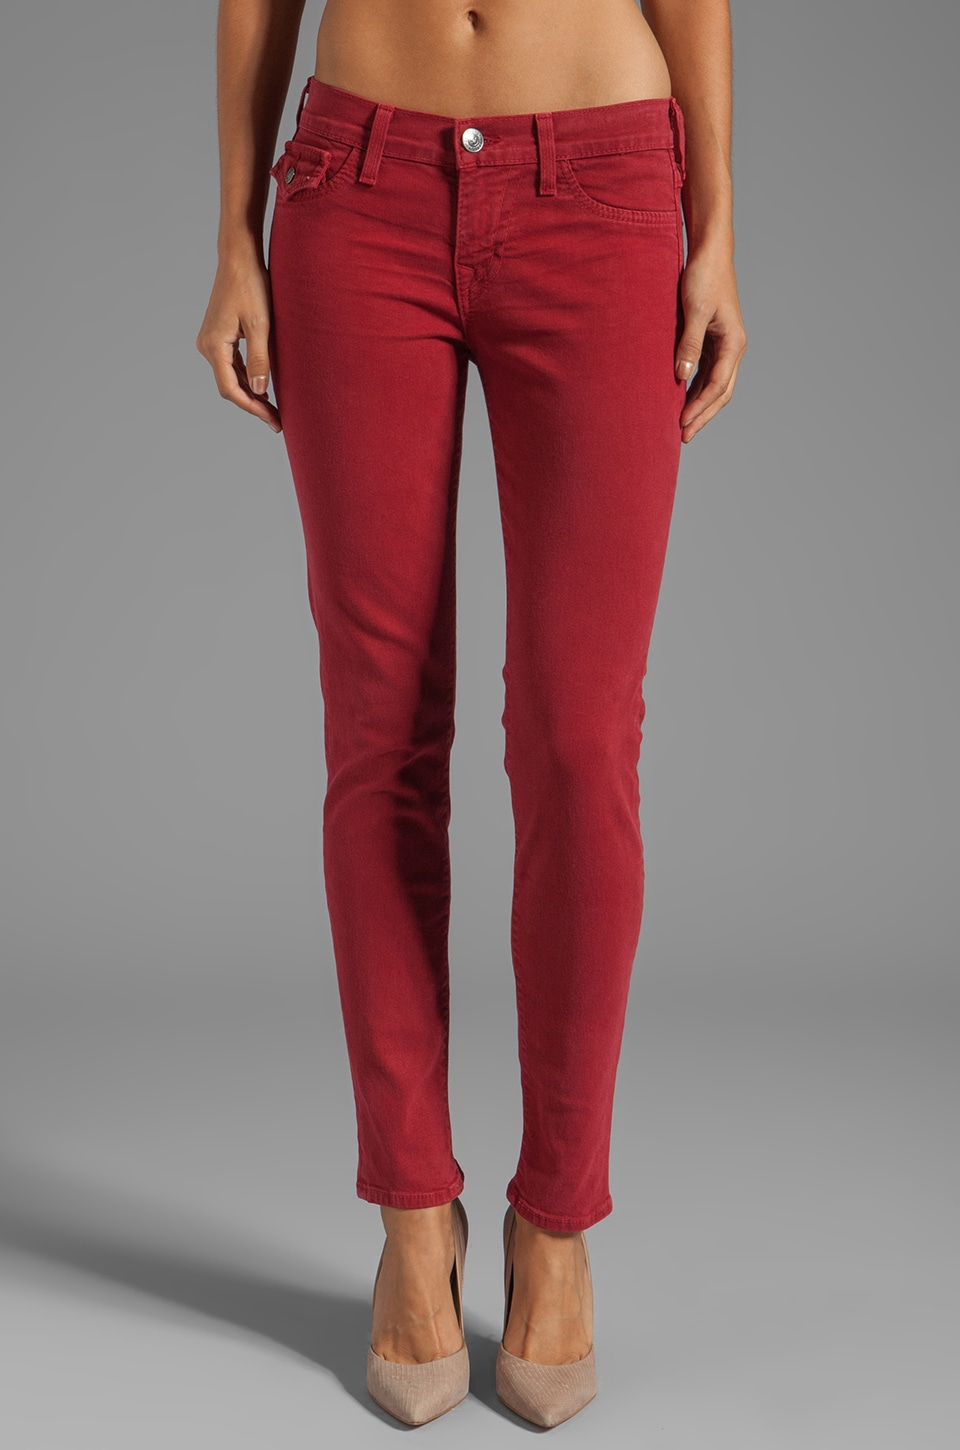 True Religion Serena High Rise Super Skinny in Crimson